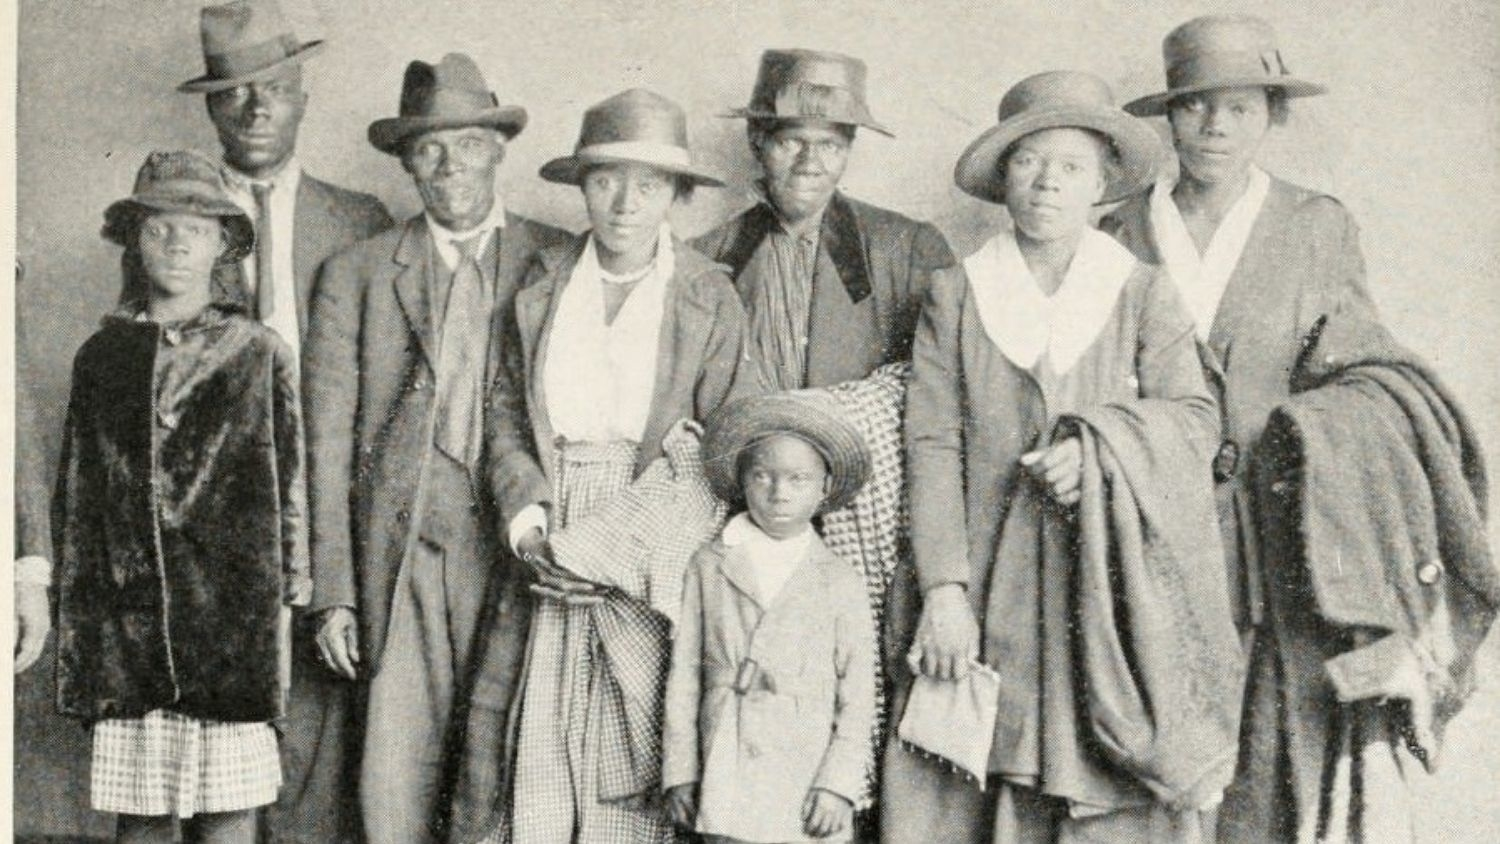 The Arthur family arrives in Chicago - Study Spotlights Black Social Reformer, Parks and Rec Pioneer, on Chicago's South Side - College of Natural Resources News NC State University